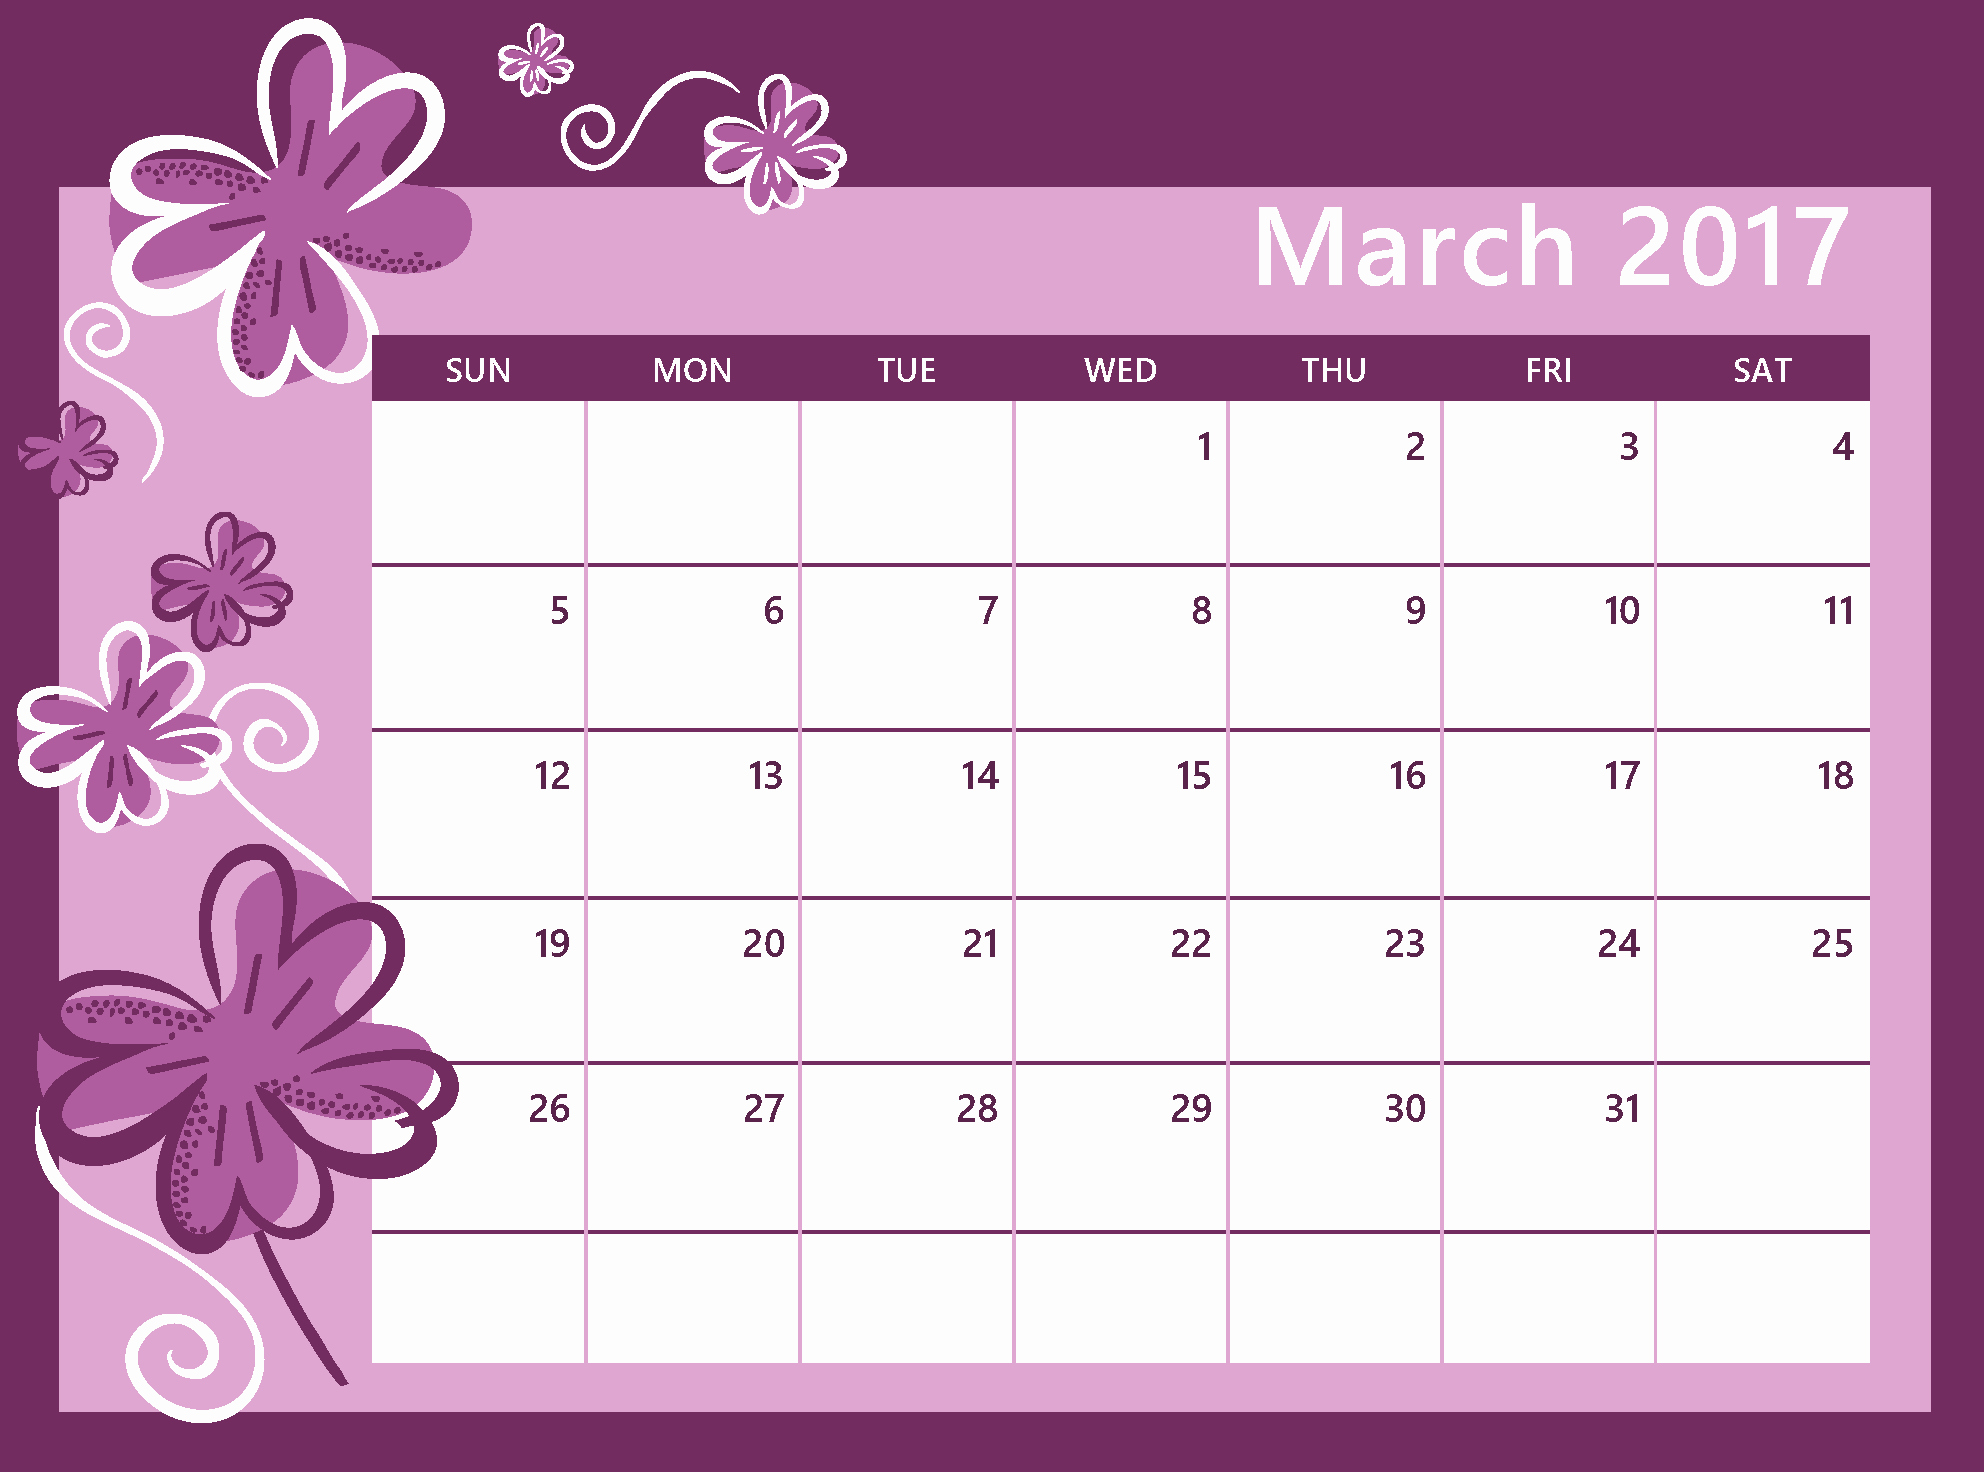 Calendar that I Can Edit Lovely March 2017 Calendar to Edit Calendar and